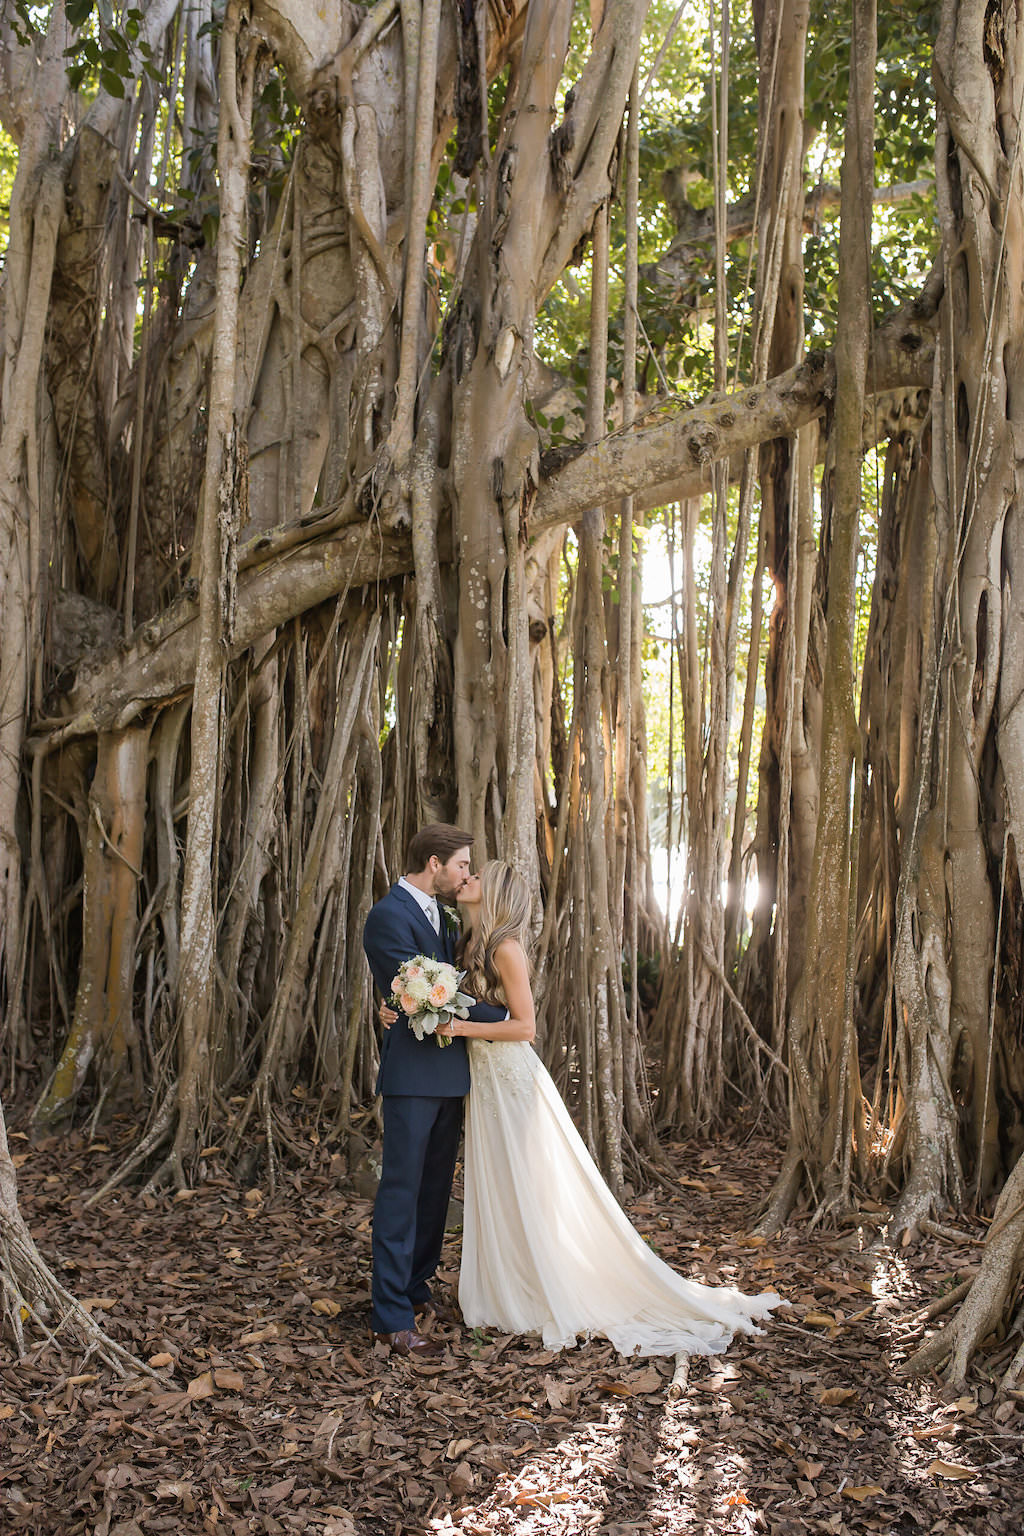 Bride in Floor Length White Wedding Dress Holding White and Pink Bouquet Kissing Groom in Blue Suit with Banyan Tree Backdrop   Sarasota Wedding Photographer Cat Pennenga Photography